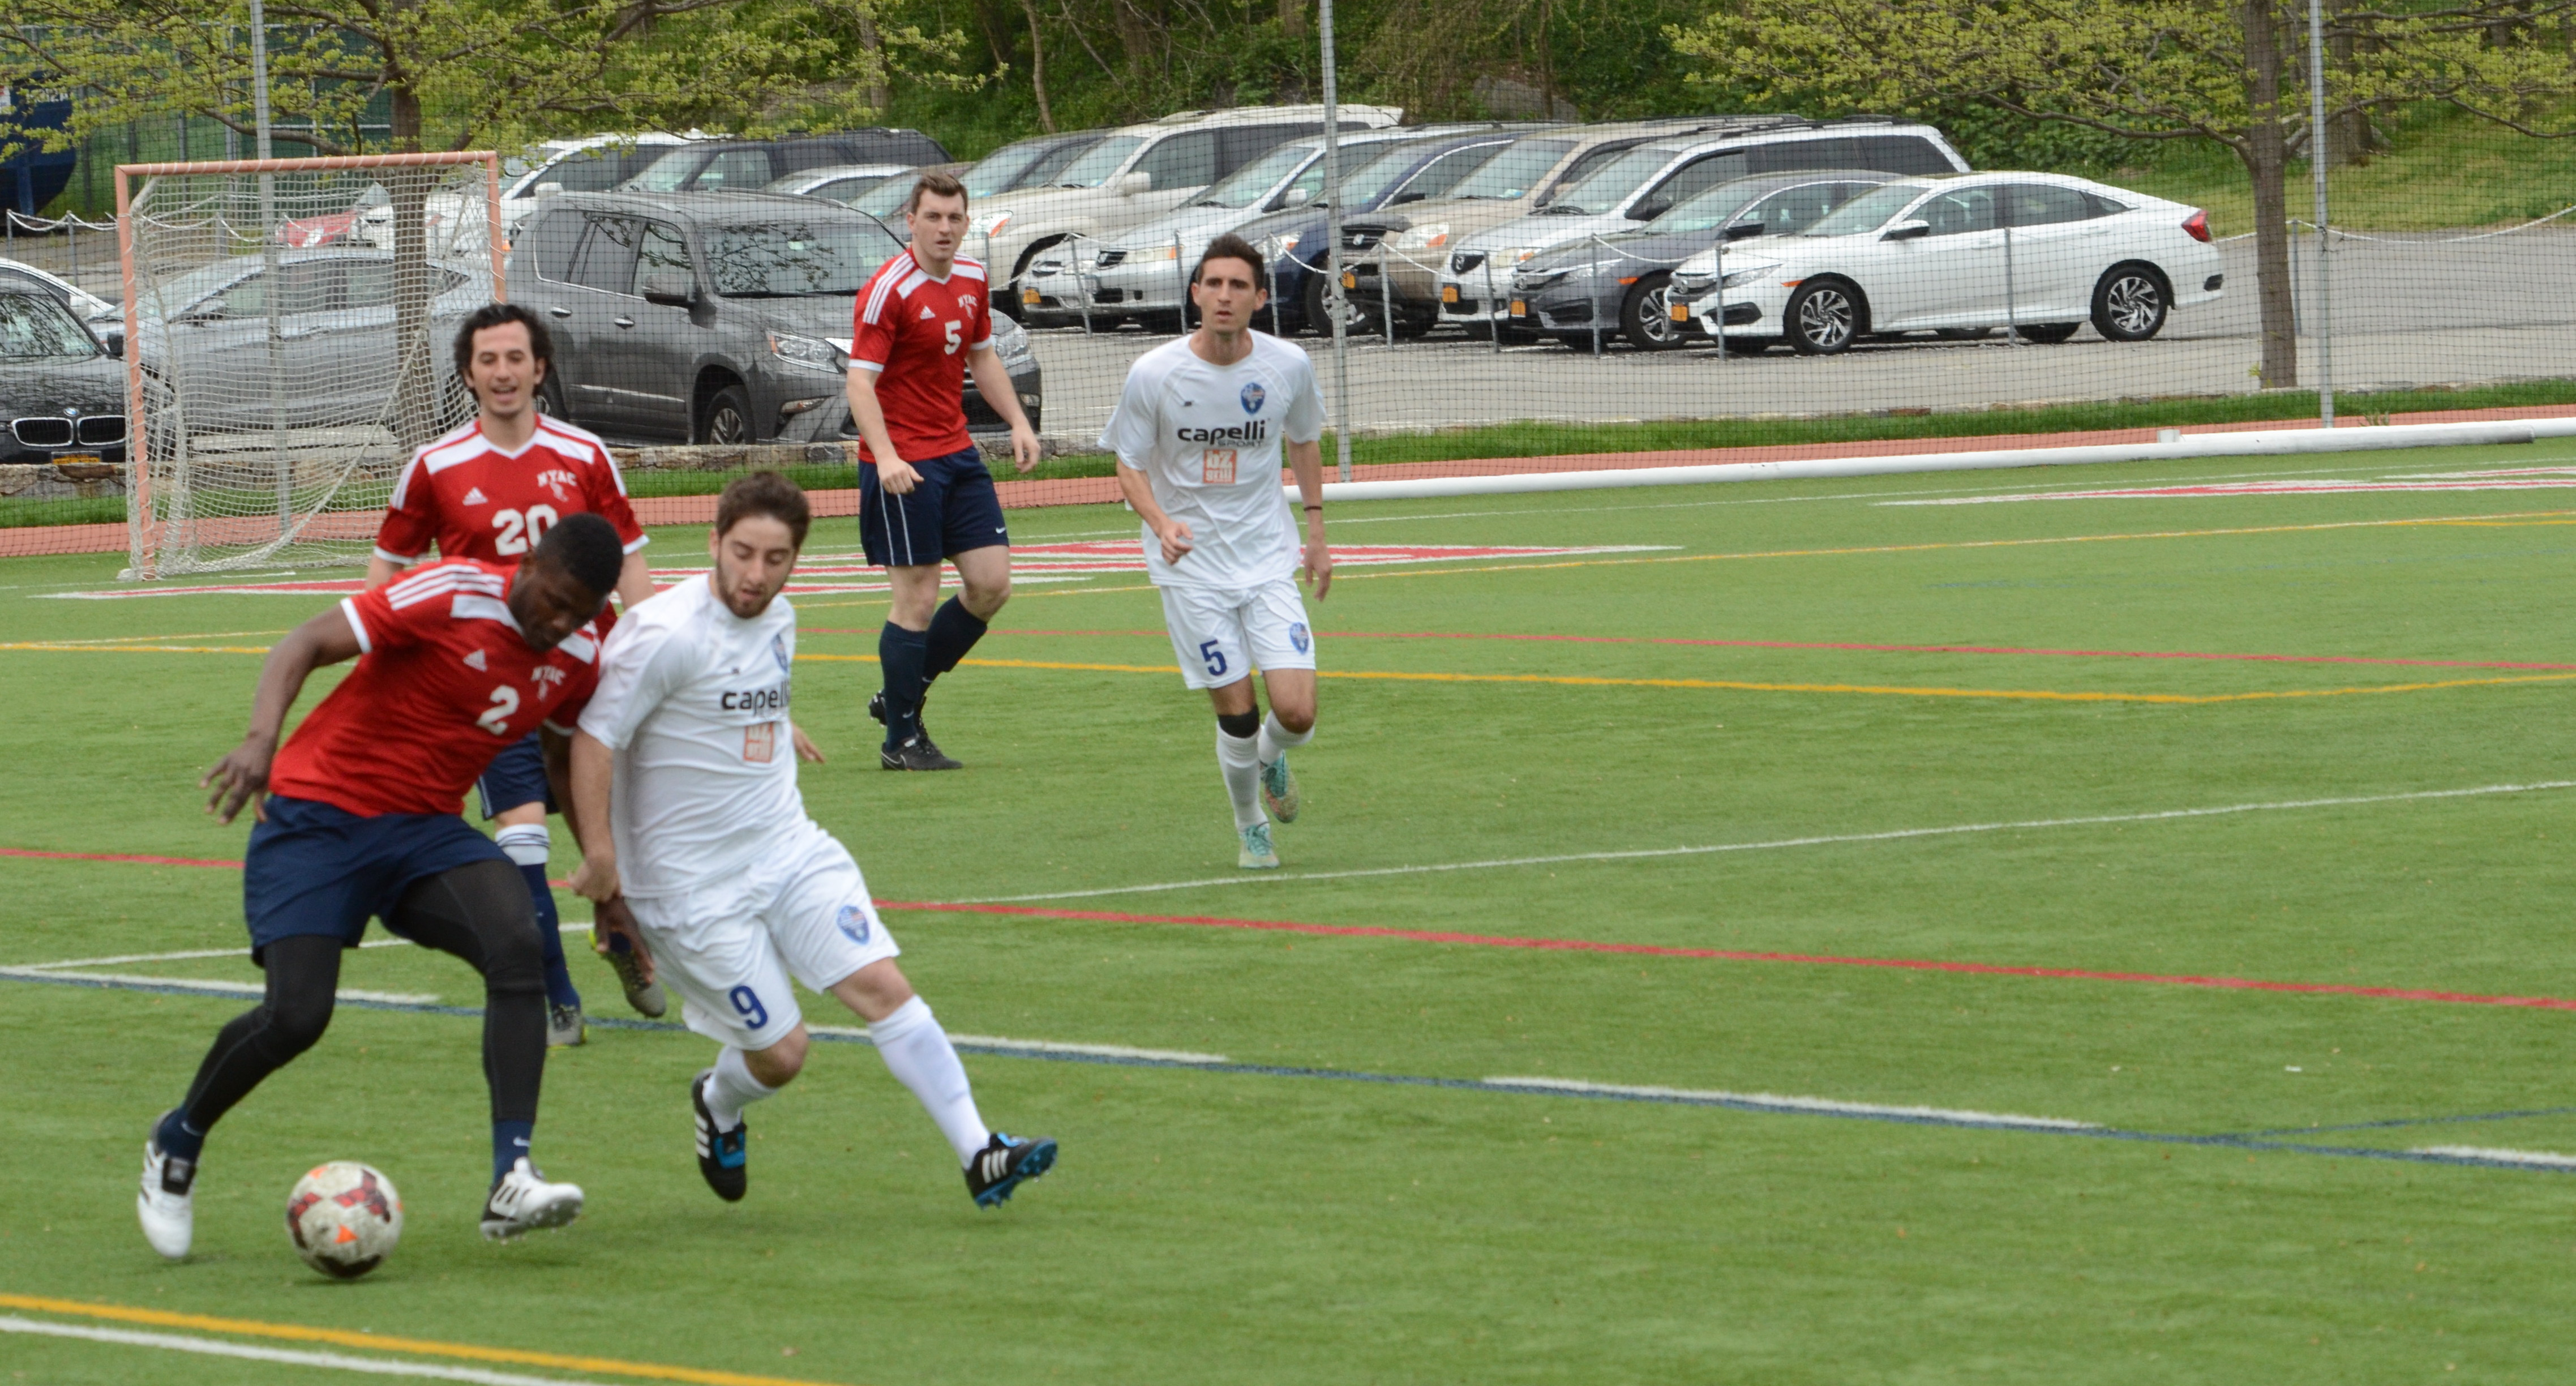 NYAC starts the season with two wins after a rough campaign last year